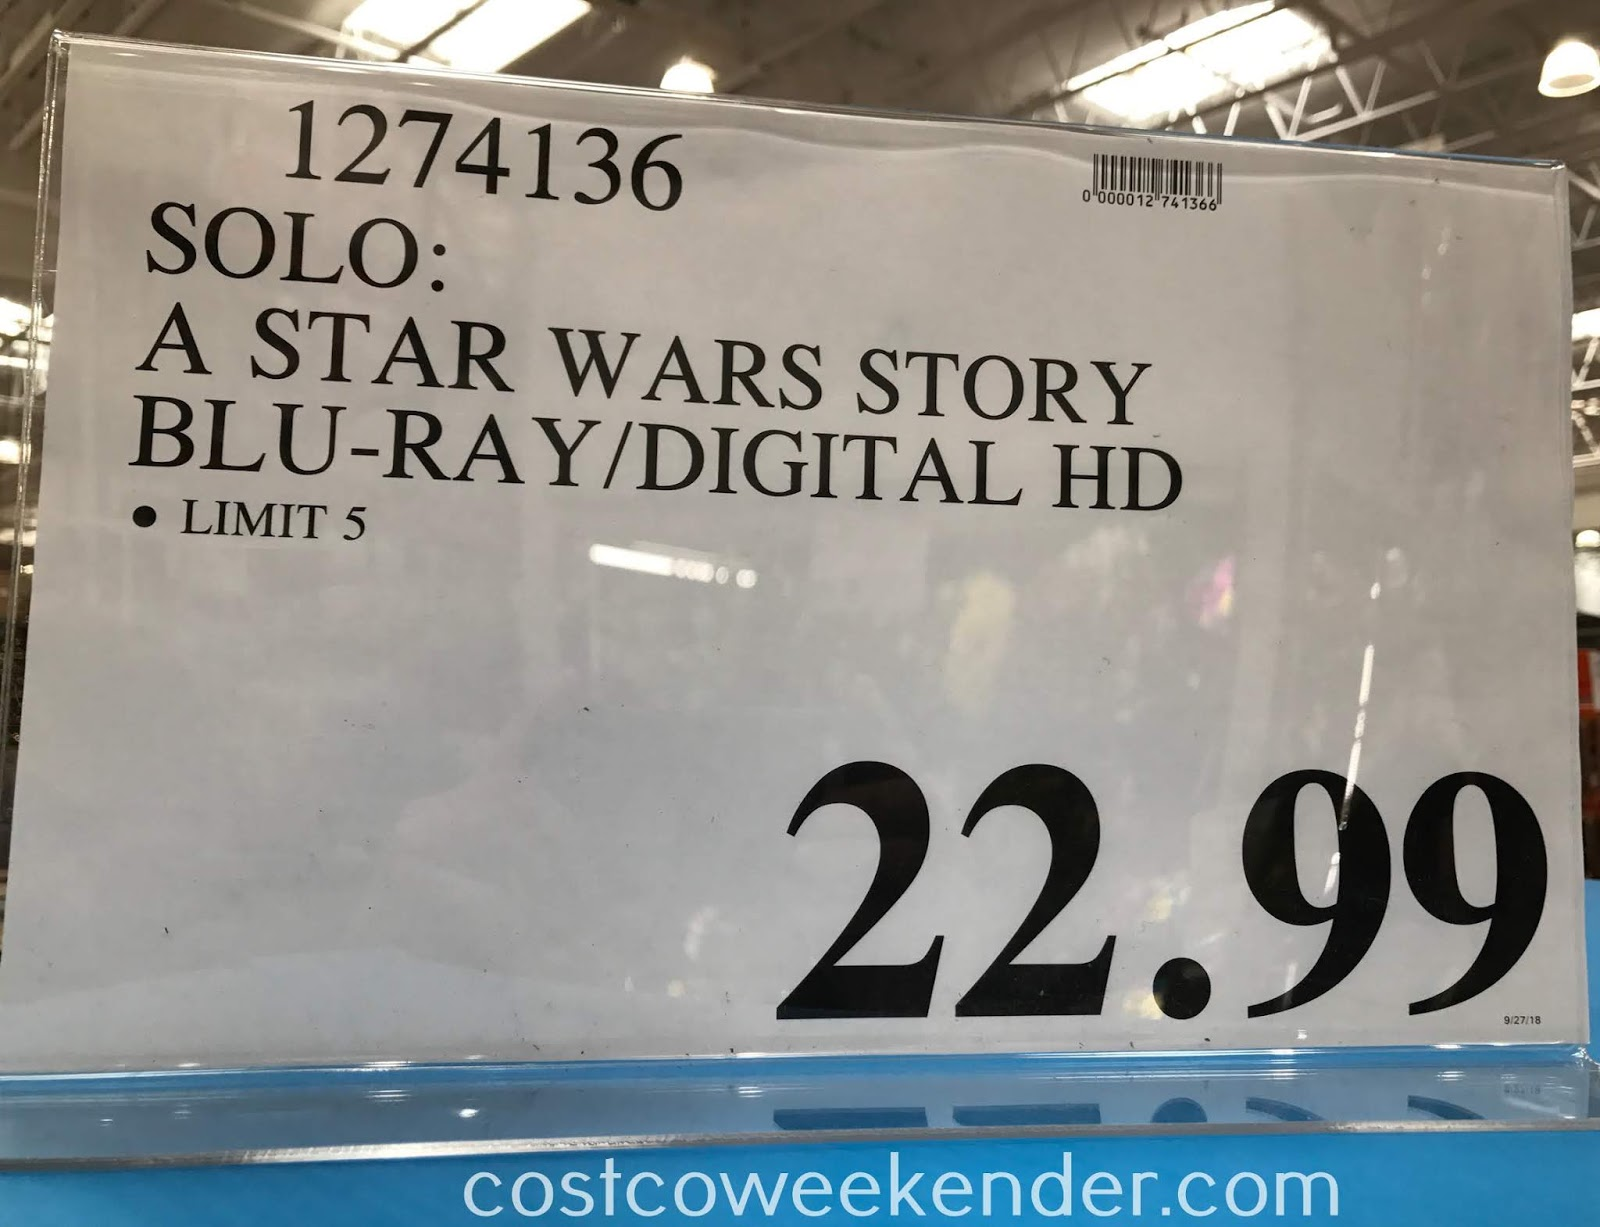 Deal for a Solo: A Star Wars Story Blu-ray at Costco